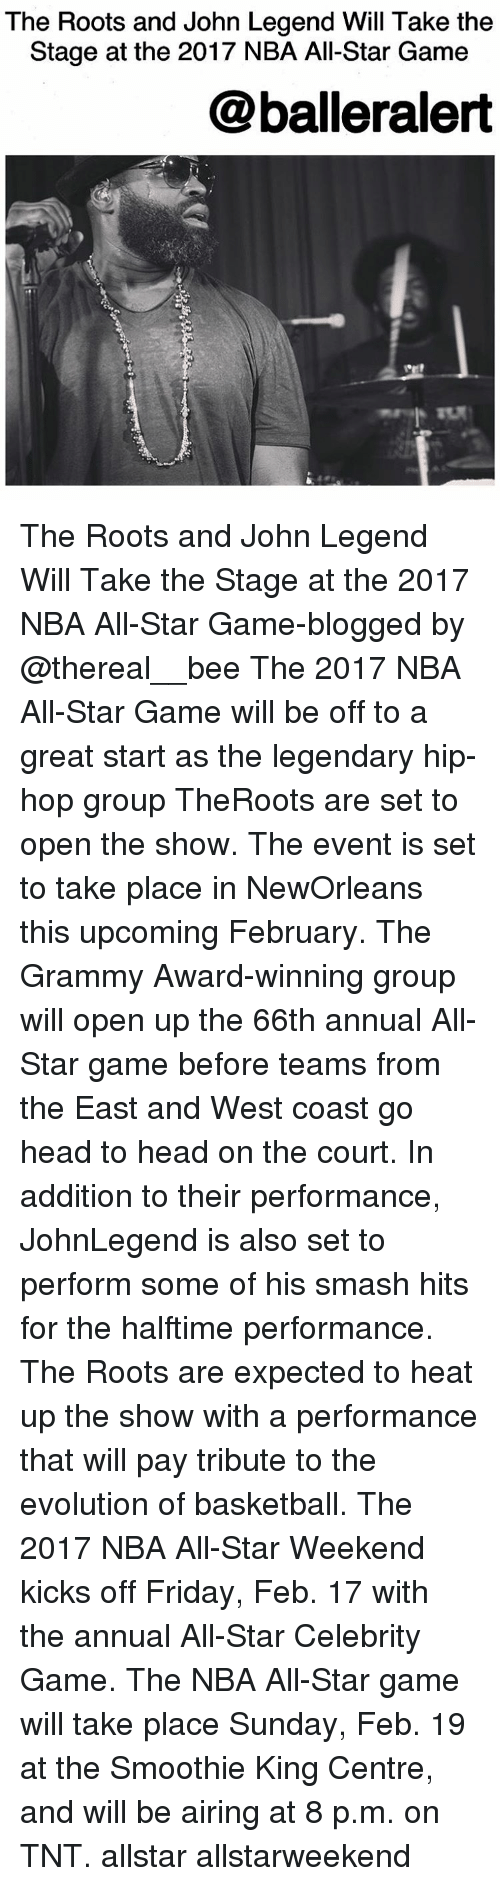 All Star, Grammy Awards, and Grammys: The Roots and John Legend Will Take the  Stage at the 2017 NBA All-Star Game  @balleralert The Roots and John Legend Will Take the Stage at the 2017 NBA All-Star Game-blogged by @thereal__bee The 2017 NBA All-Star Game will be off to a great start as the legendary hip-hop group TheRoots are set to open the show. The event is set to take place in NewOrleans this upcoming February. The Grammy Award-winning group will open up the 66th annual All-Star game before teams from the East and West coast go head to head on the court. In addition to their performance, JohnLegend is also set to perform some of his smash hits for the halftime performance. The Roots are expected to heat up the show with a performance that will pay tribute to the evolution of basketball. The 2017 NBA All-Star Weekend kicks off Friday, Feb. 17 with the annual All-Star Celebrity Game. The NBA All-Star game will take place Sunday, Feb. 19 at the Smoothie King Centre, and will be airing at 8 p.m. on TNT. allstar allstarweekend